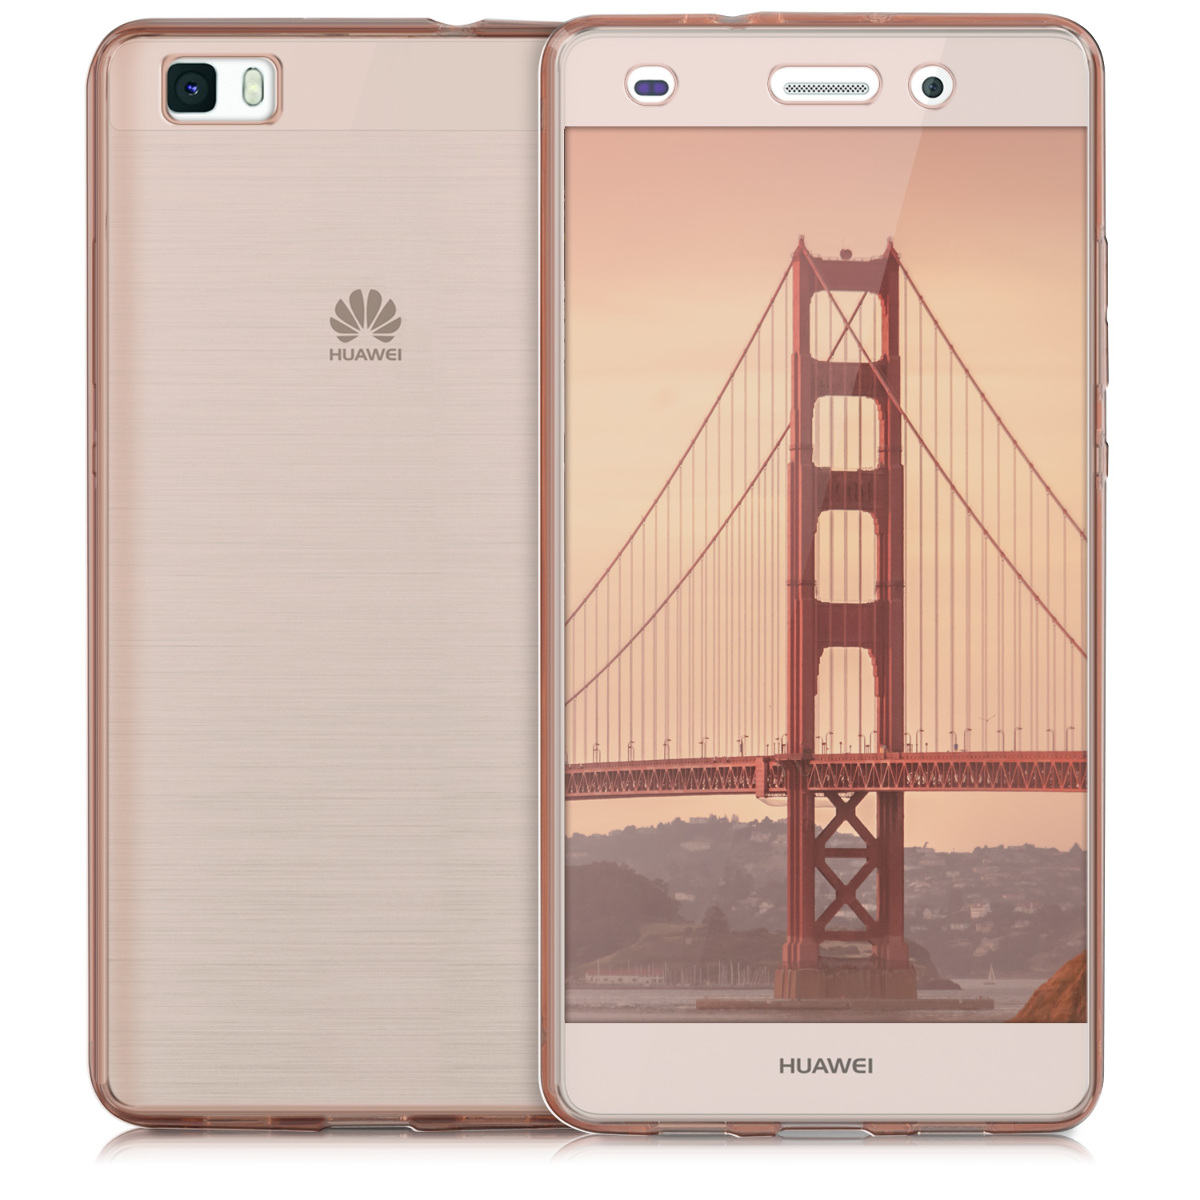 ETUI-FULL-BODY-POUR-HUAWEI-P8-LITE-2015-COVER-PROTECTEUR-TPU-SILICONE-COMPLET